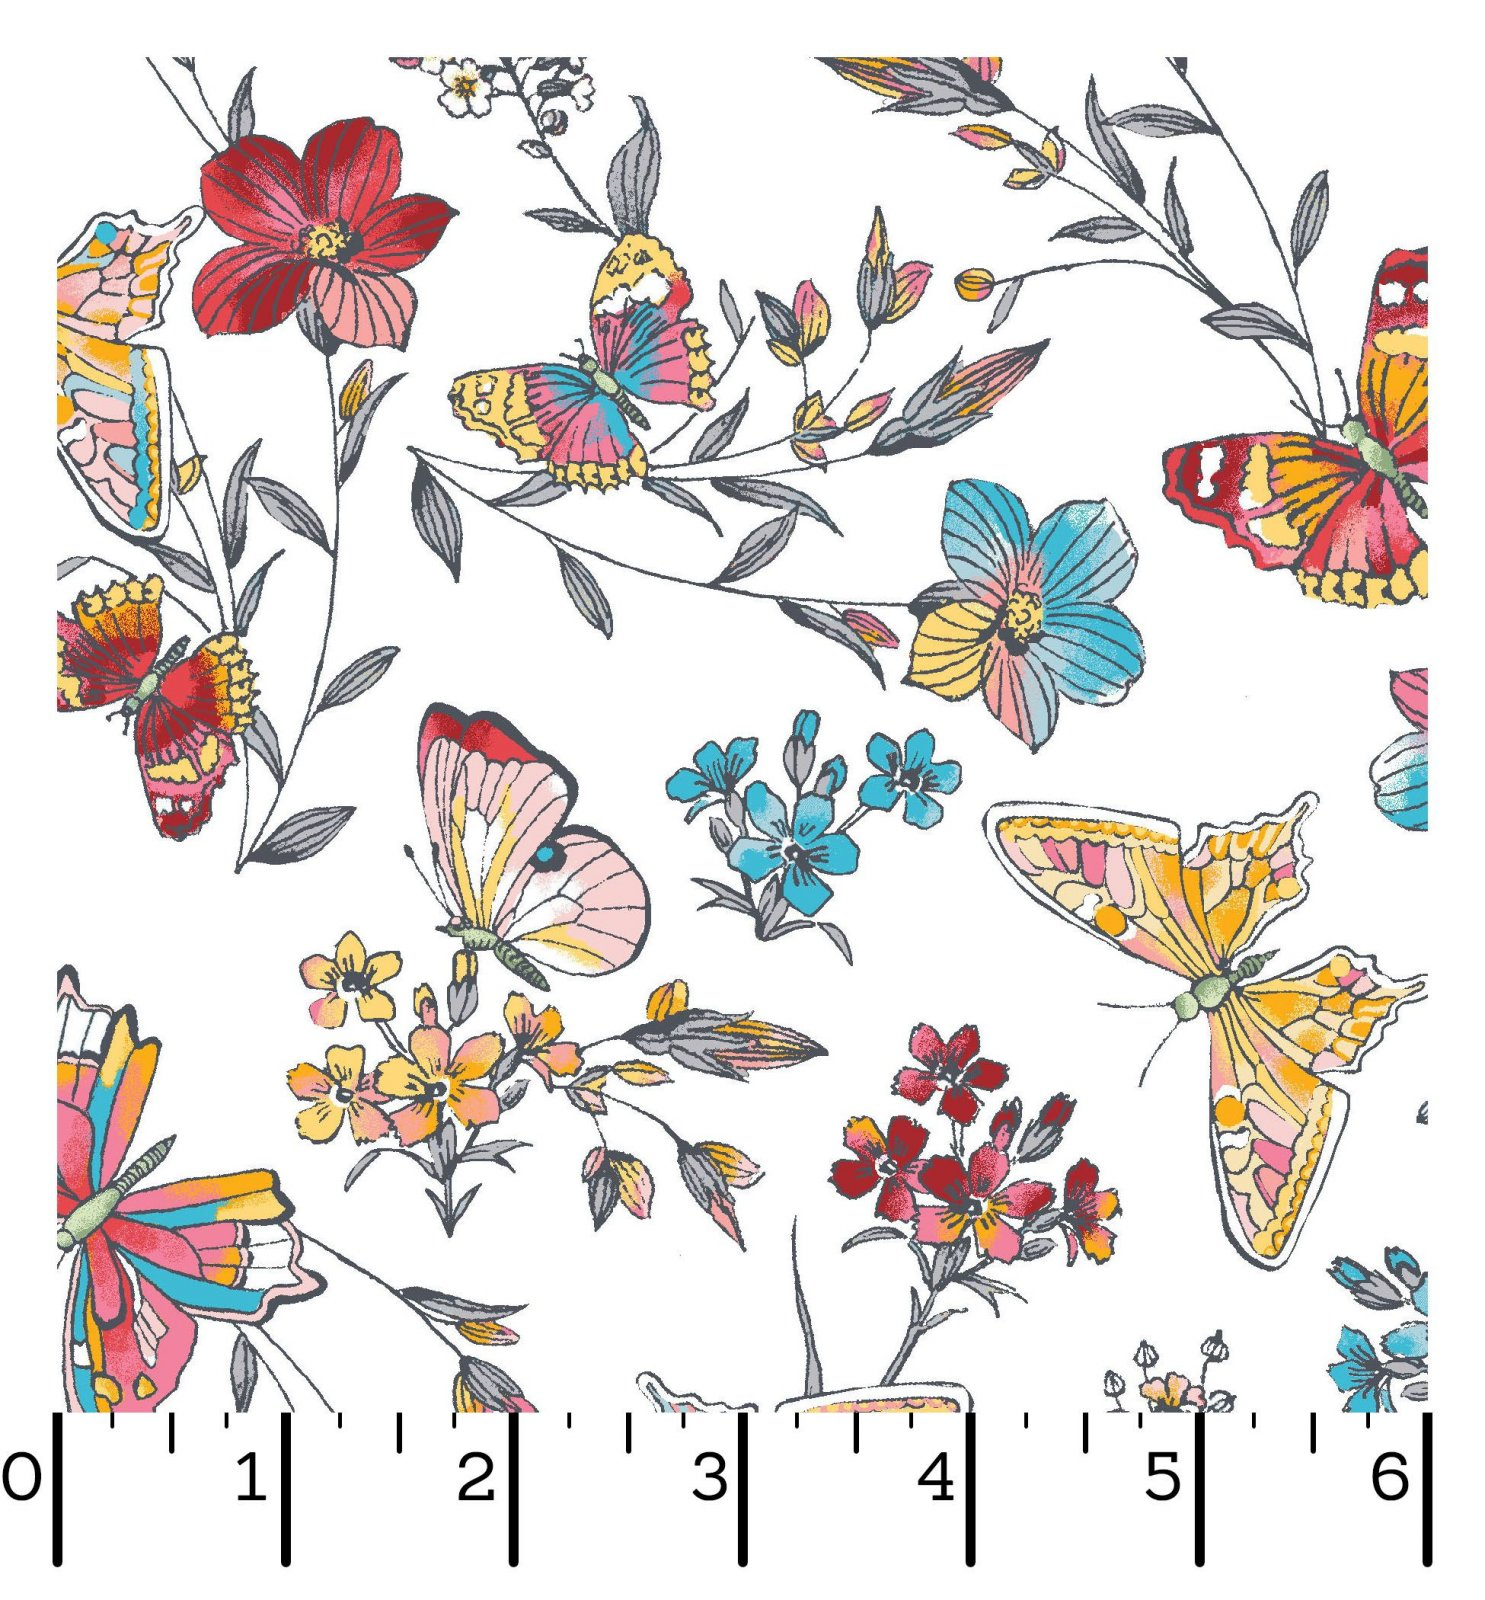 EESC-D10004 W - MEADOW EDGE BY MAYWOOD STUDIO BUTTERFLIES WHITE - ARRIVING IN MAY 2021